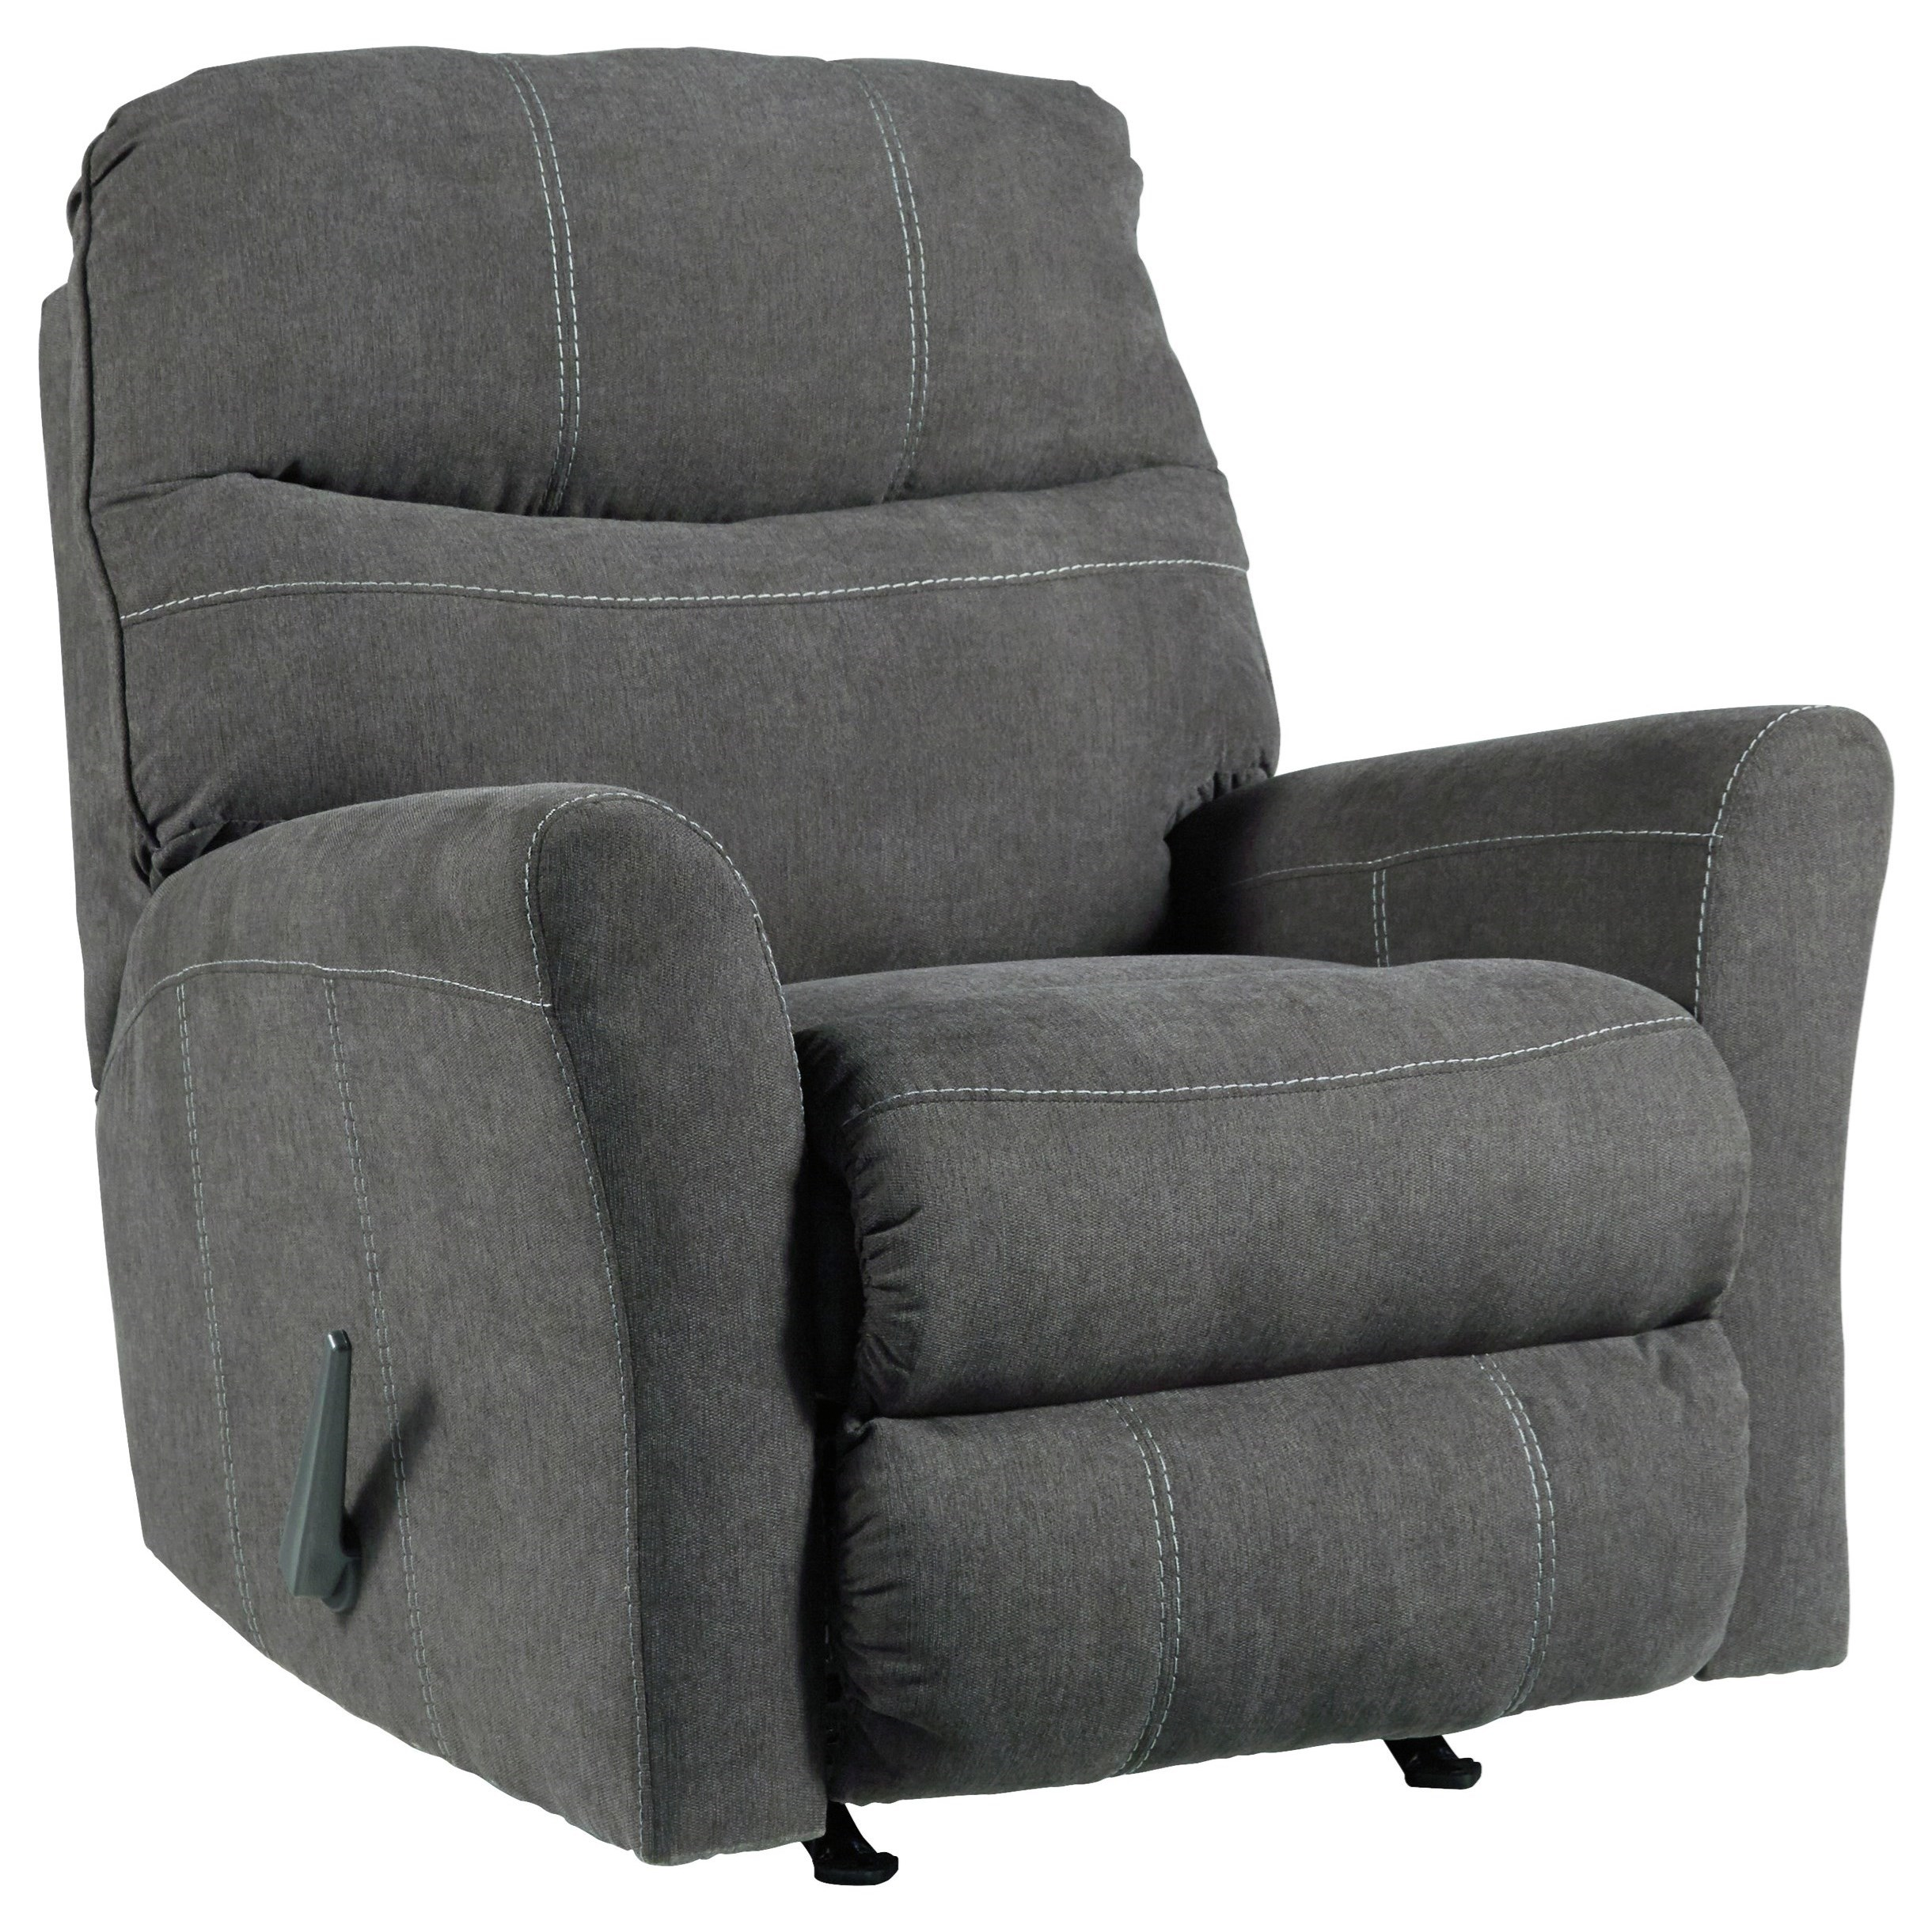 Benchcraft Maier - Charcoal Rocker Recliner - Item Number 4520025  sc 1 st  Wayside Furniture & Benchcraft Maier - Charcoal Casual Contemporary Rocker Recliner ... islam-shia.org